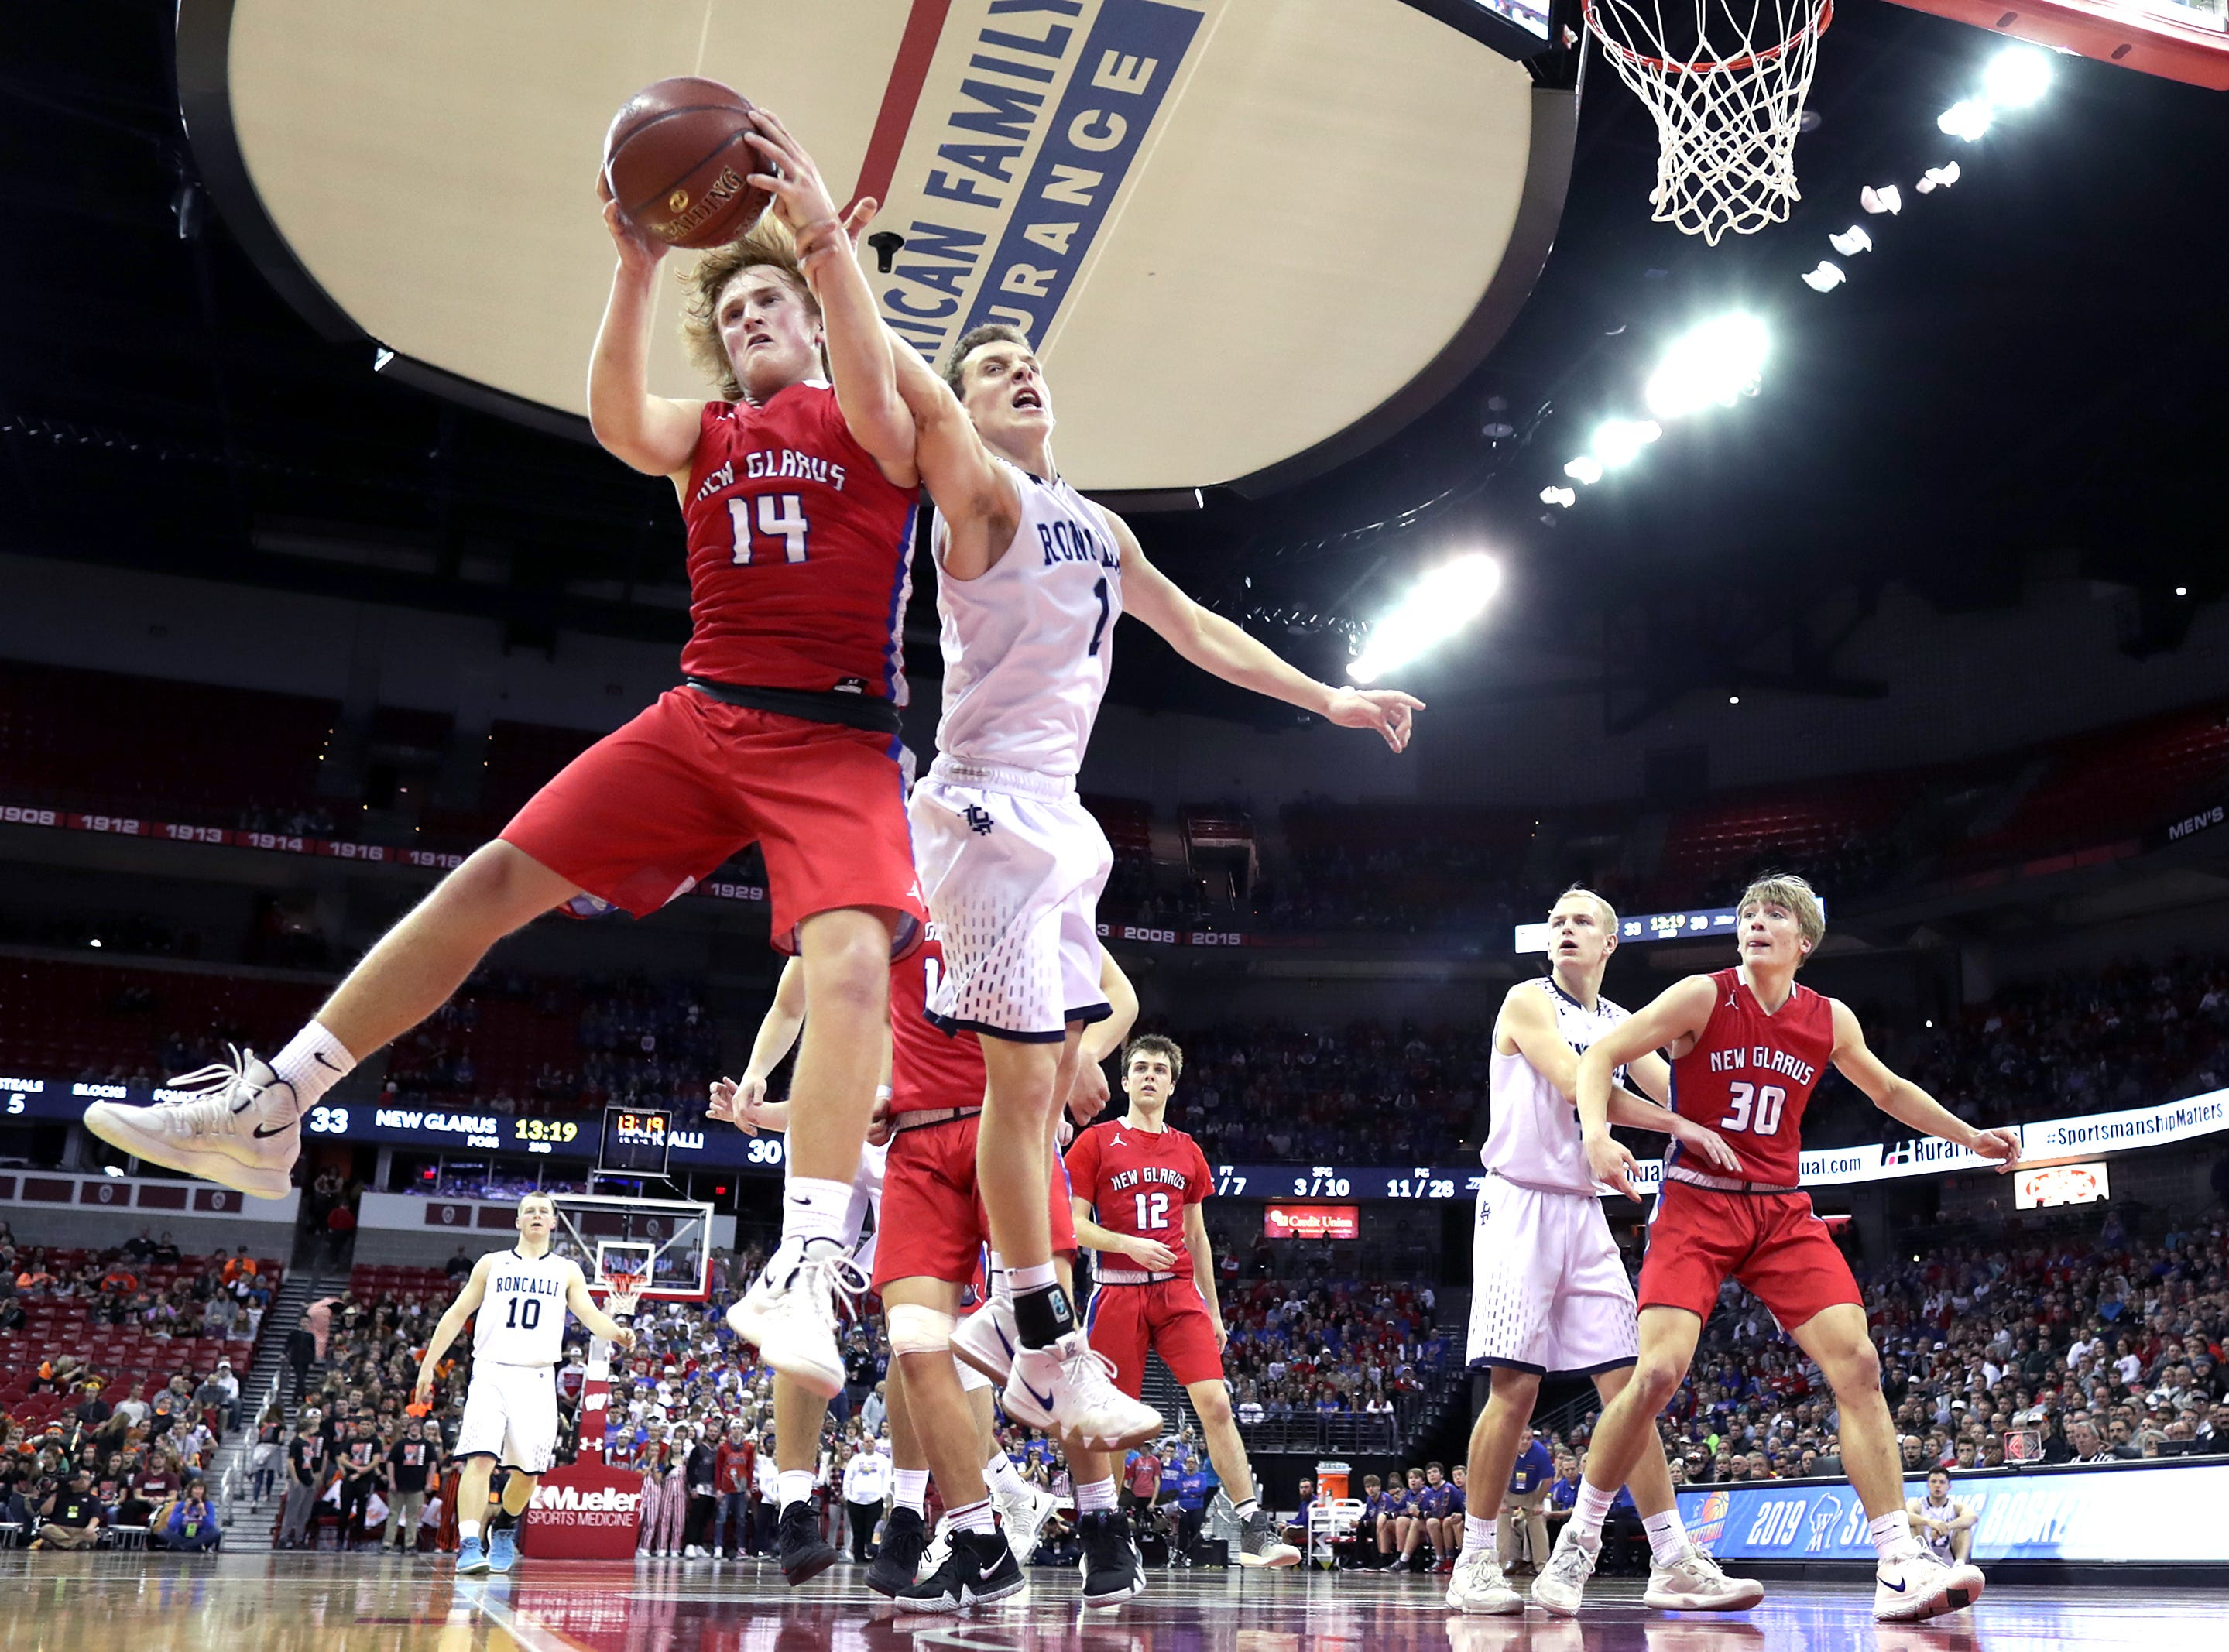 Roncalli High School against New Glarus High School during their WIAA Division 4 boys basketball state semifinal on Thursday, March 14, 2019, at the KohlCenter in Madison, Wis. New Glarus defeated Roncalli 44 to 41.Wm. Glasheen/USA TODAY NETWORK-Wisconsin.